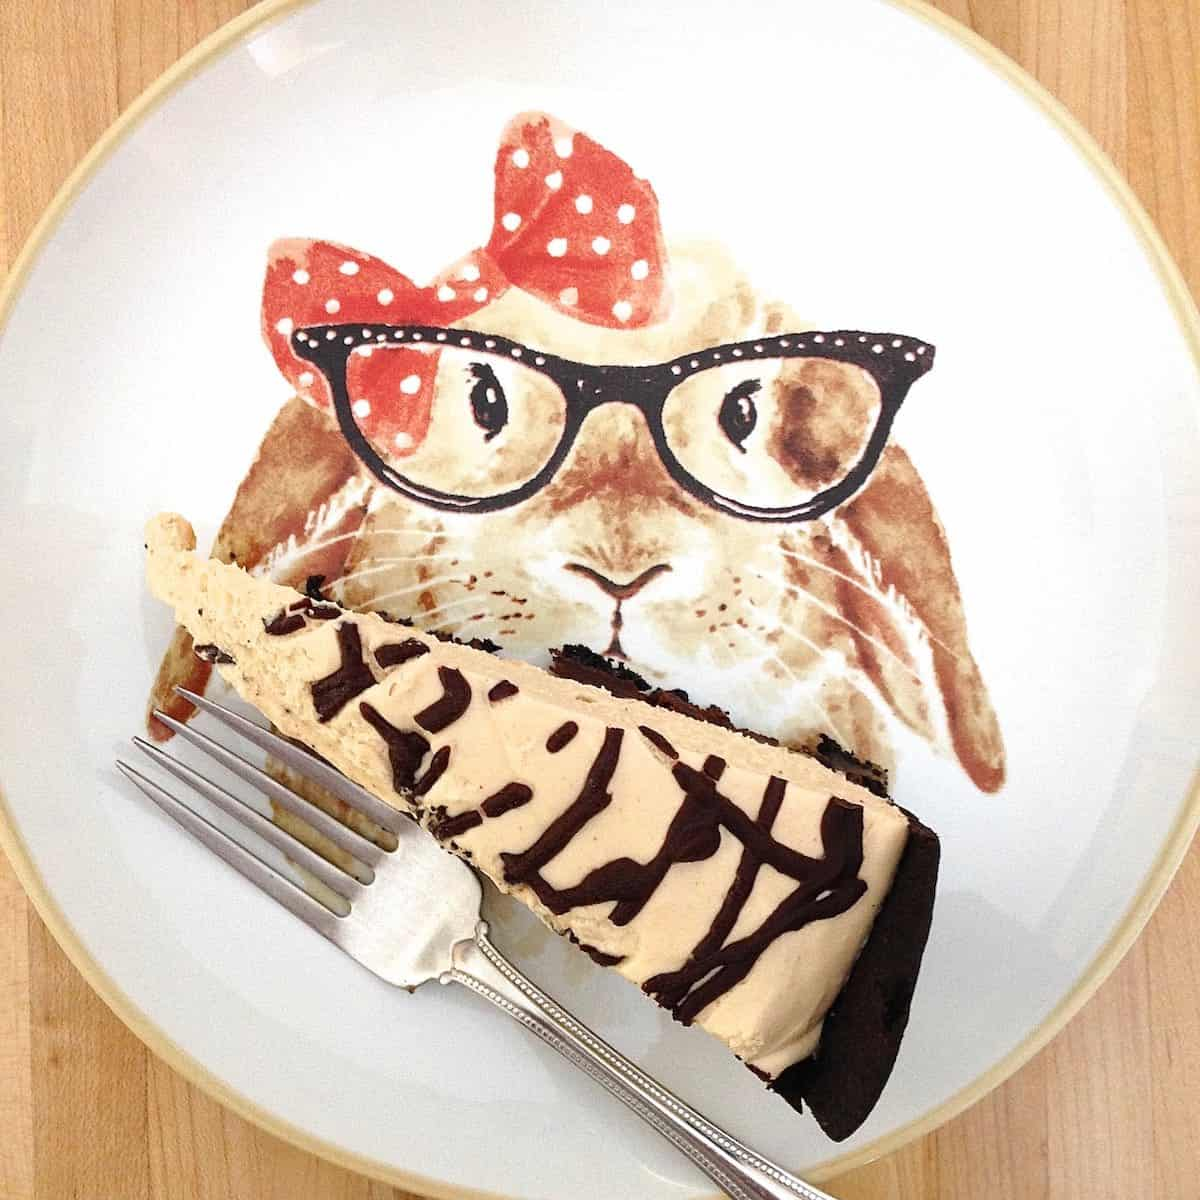 looks like me, doesn't it? slice of peanut butter turtle torte on plate painted with a lady rabbit wearing glasses